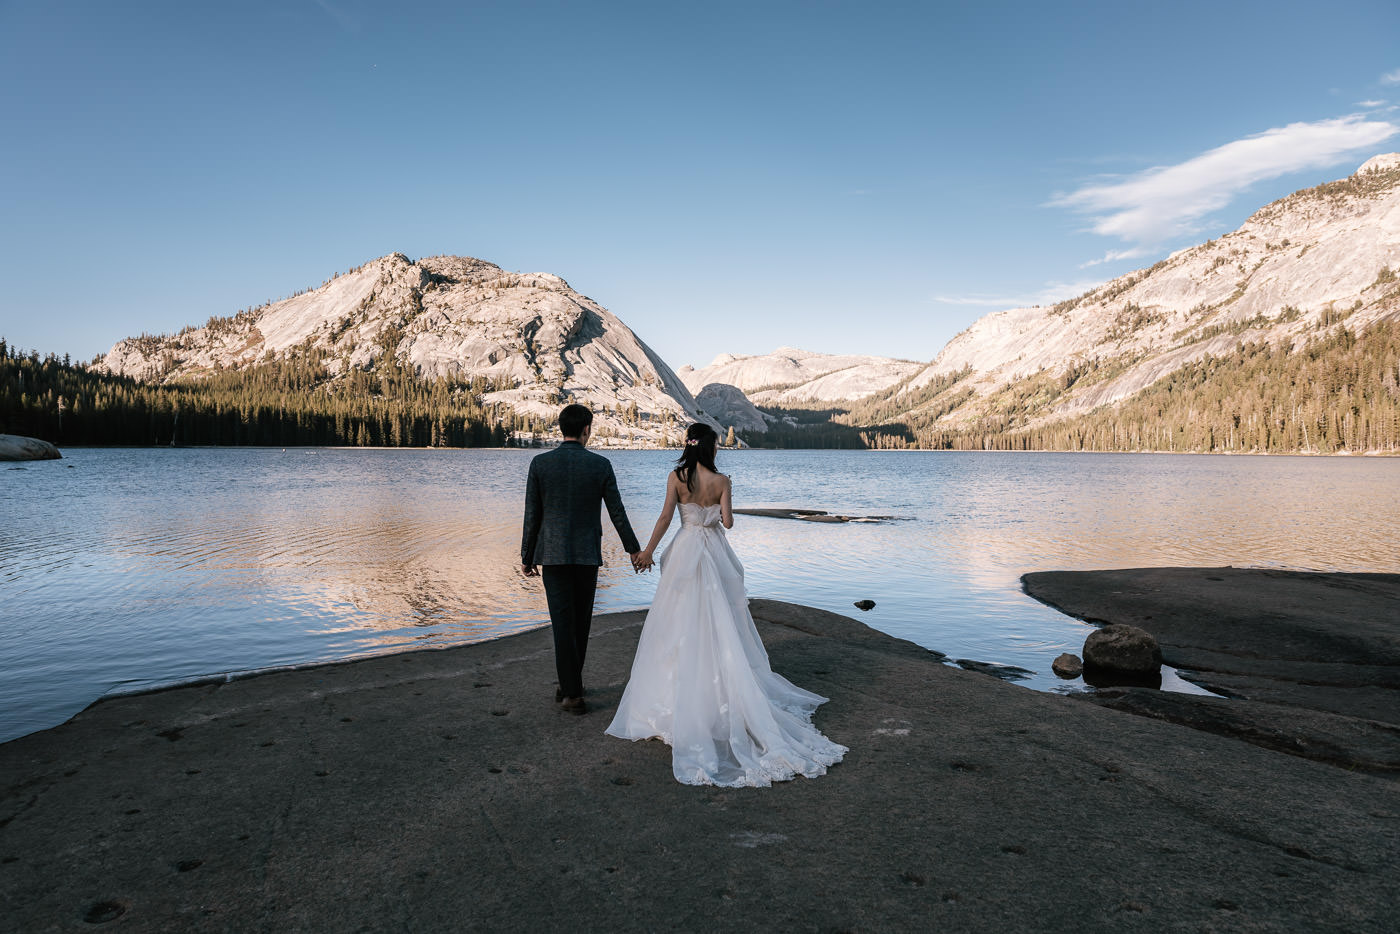 tenaya-lake-elopement-yosemite-4.jpg